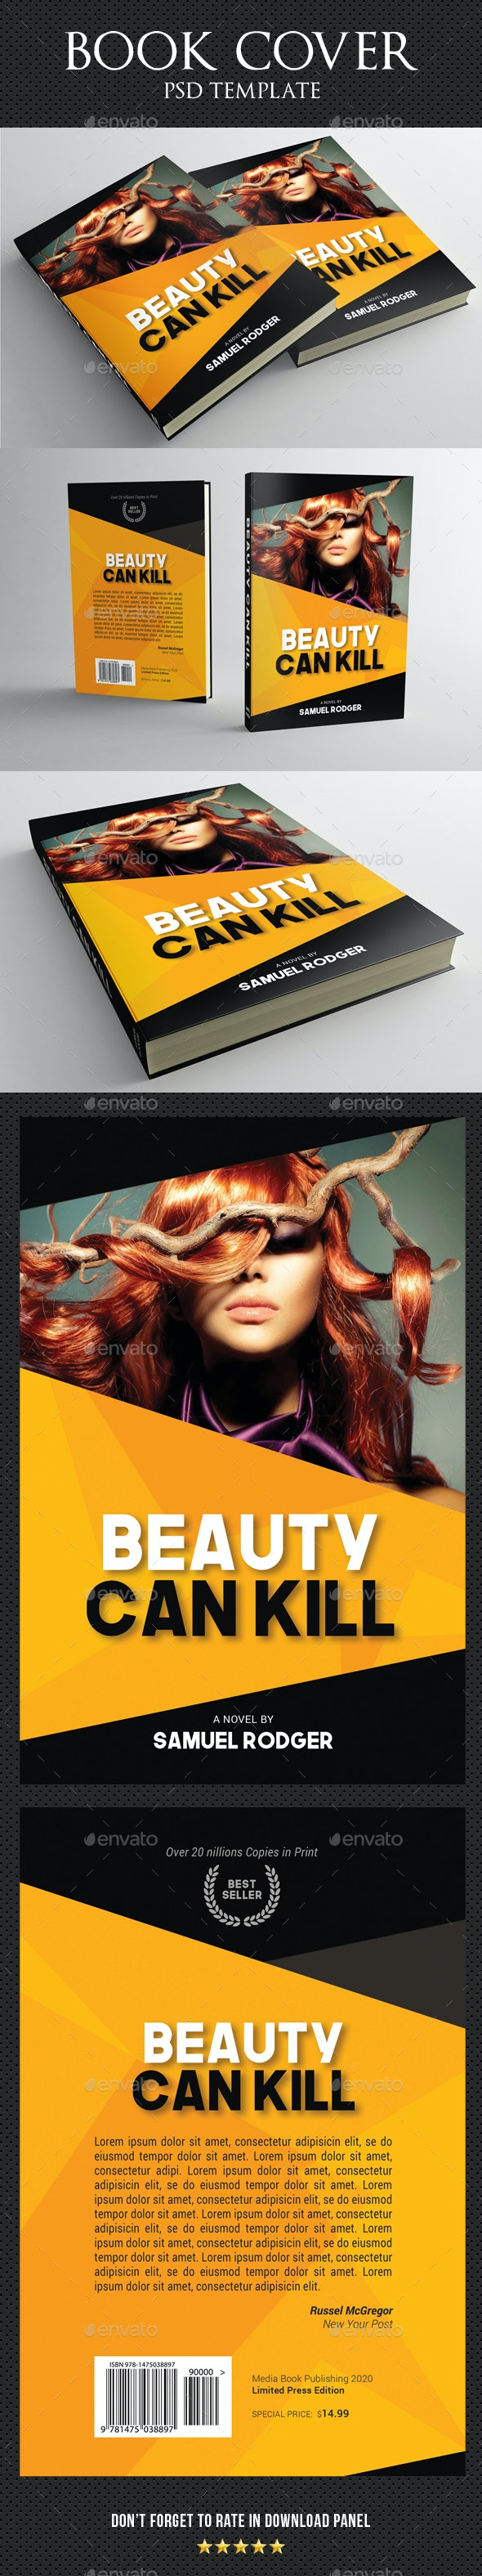 Book Cover Template 68 - Miscellaneous Print Templates